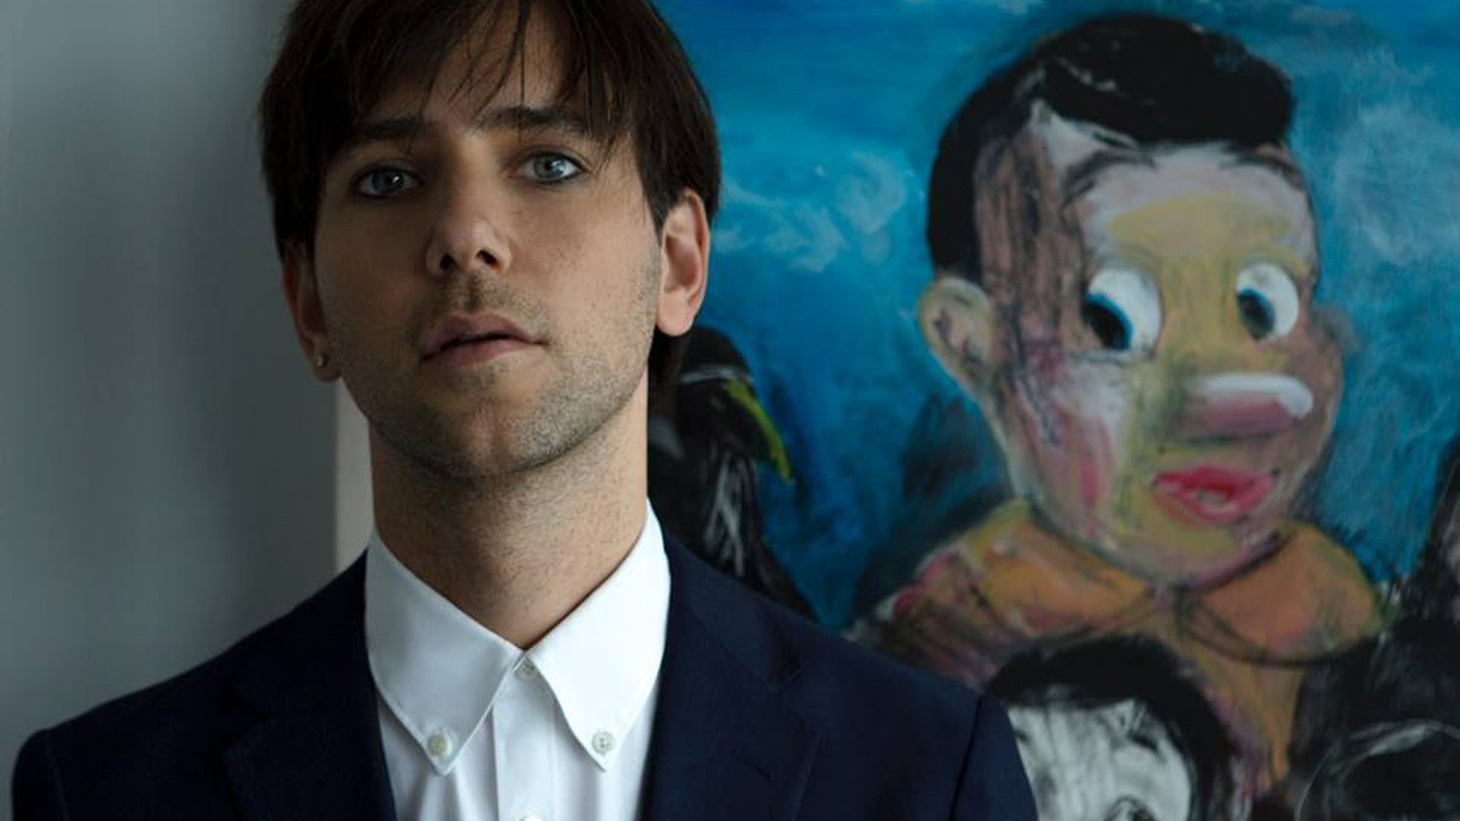 If dance music had a godfather, it would be Tiga.